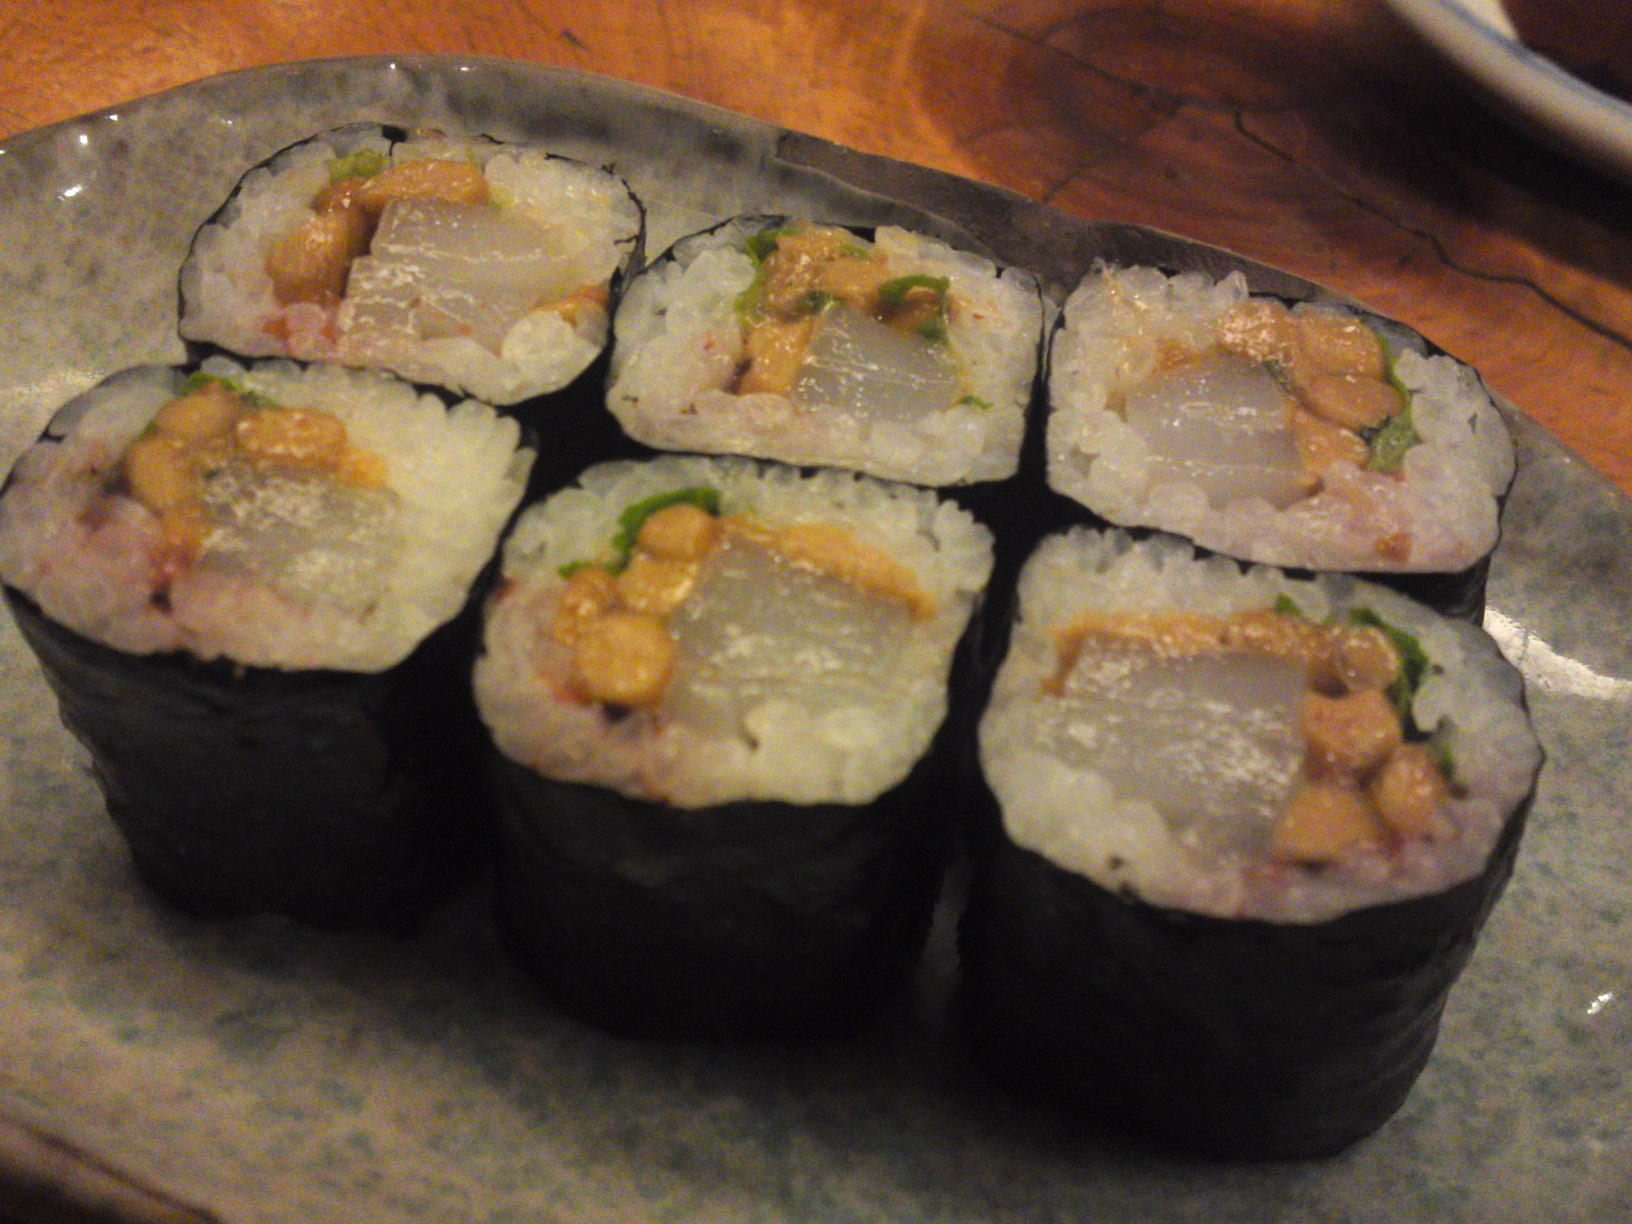 """Natto/Fermented beans and Ika/Cuttlefish"" thin sushi roll"